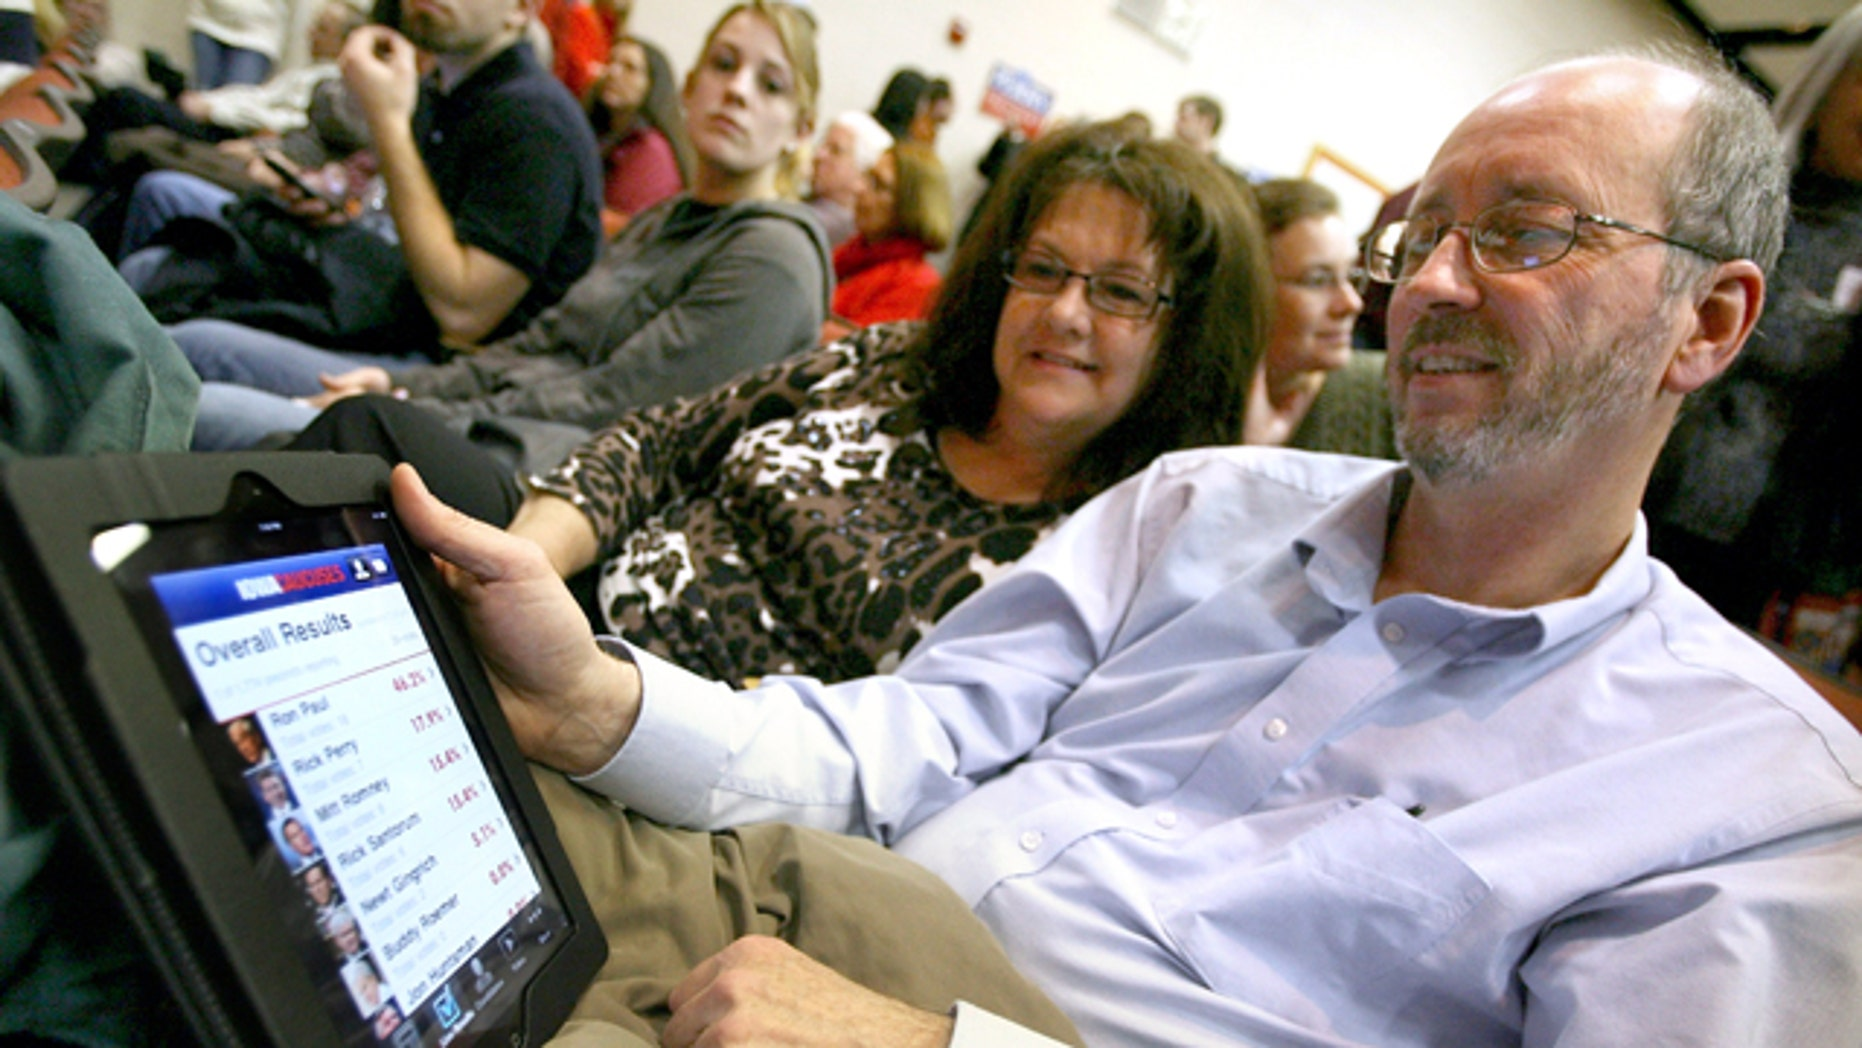 Will you vote for the next president on your iPad?